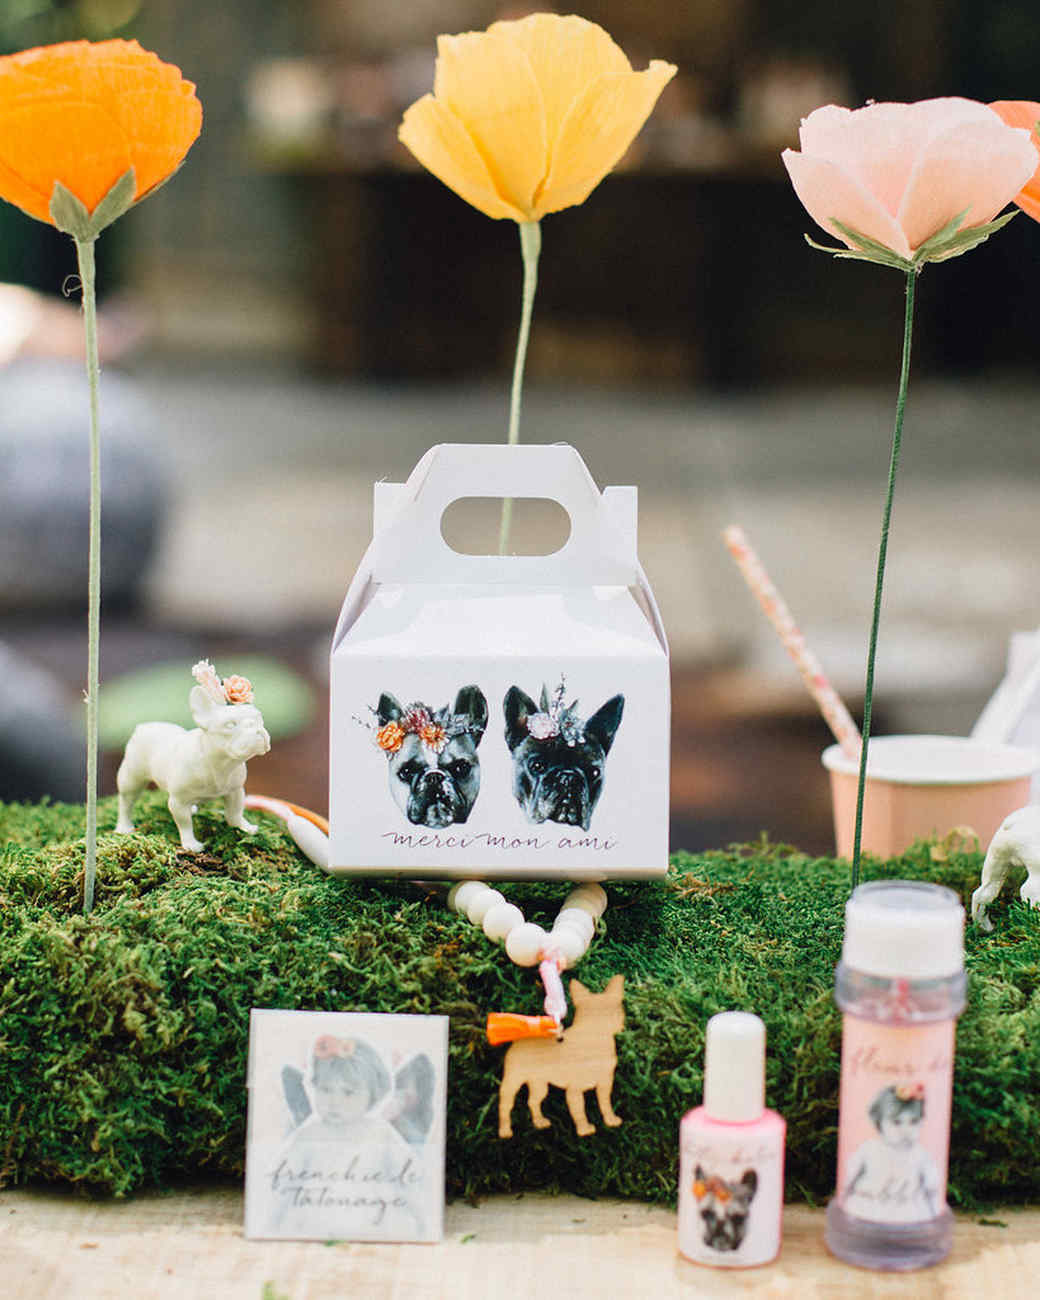 Party favors with a Frenchie theme.